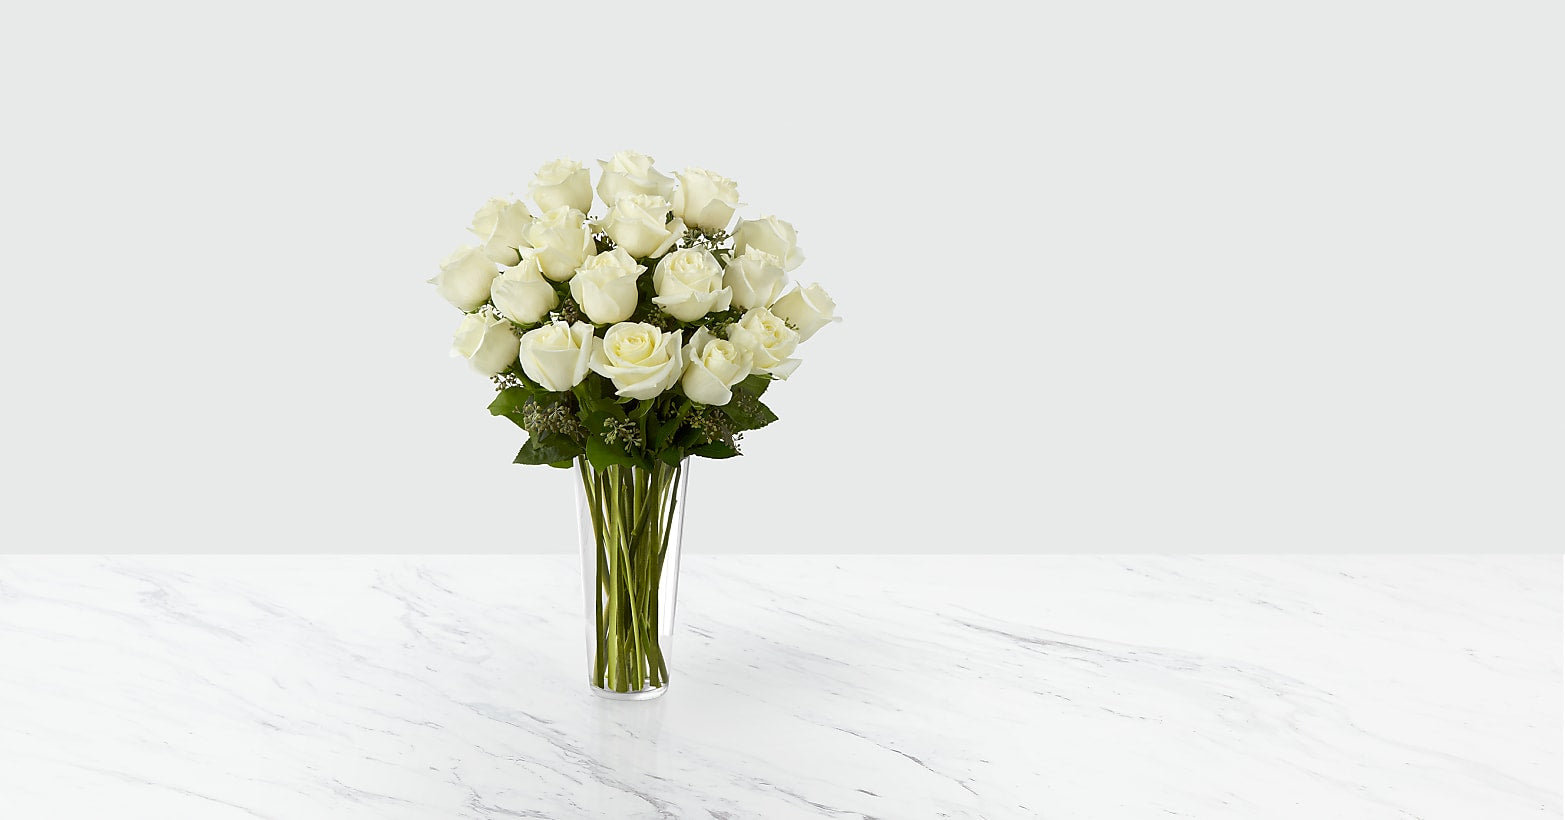 The White Rose Bouquet - Image 1 Of 2